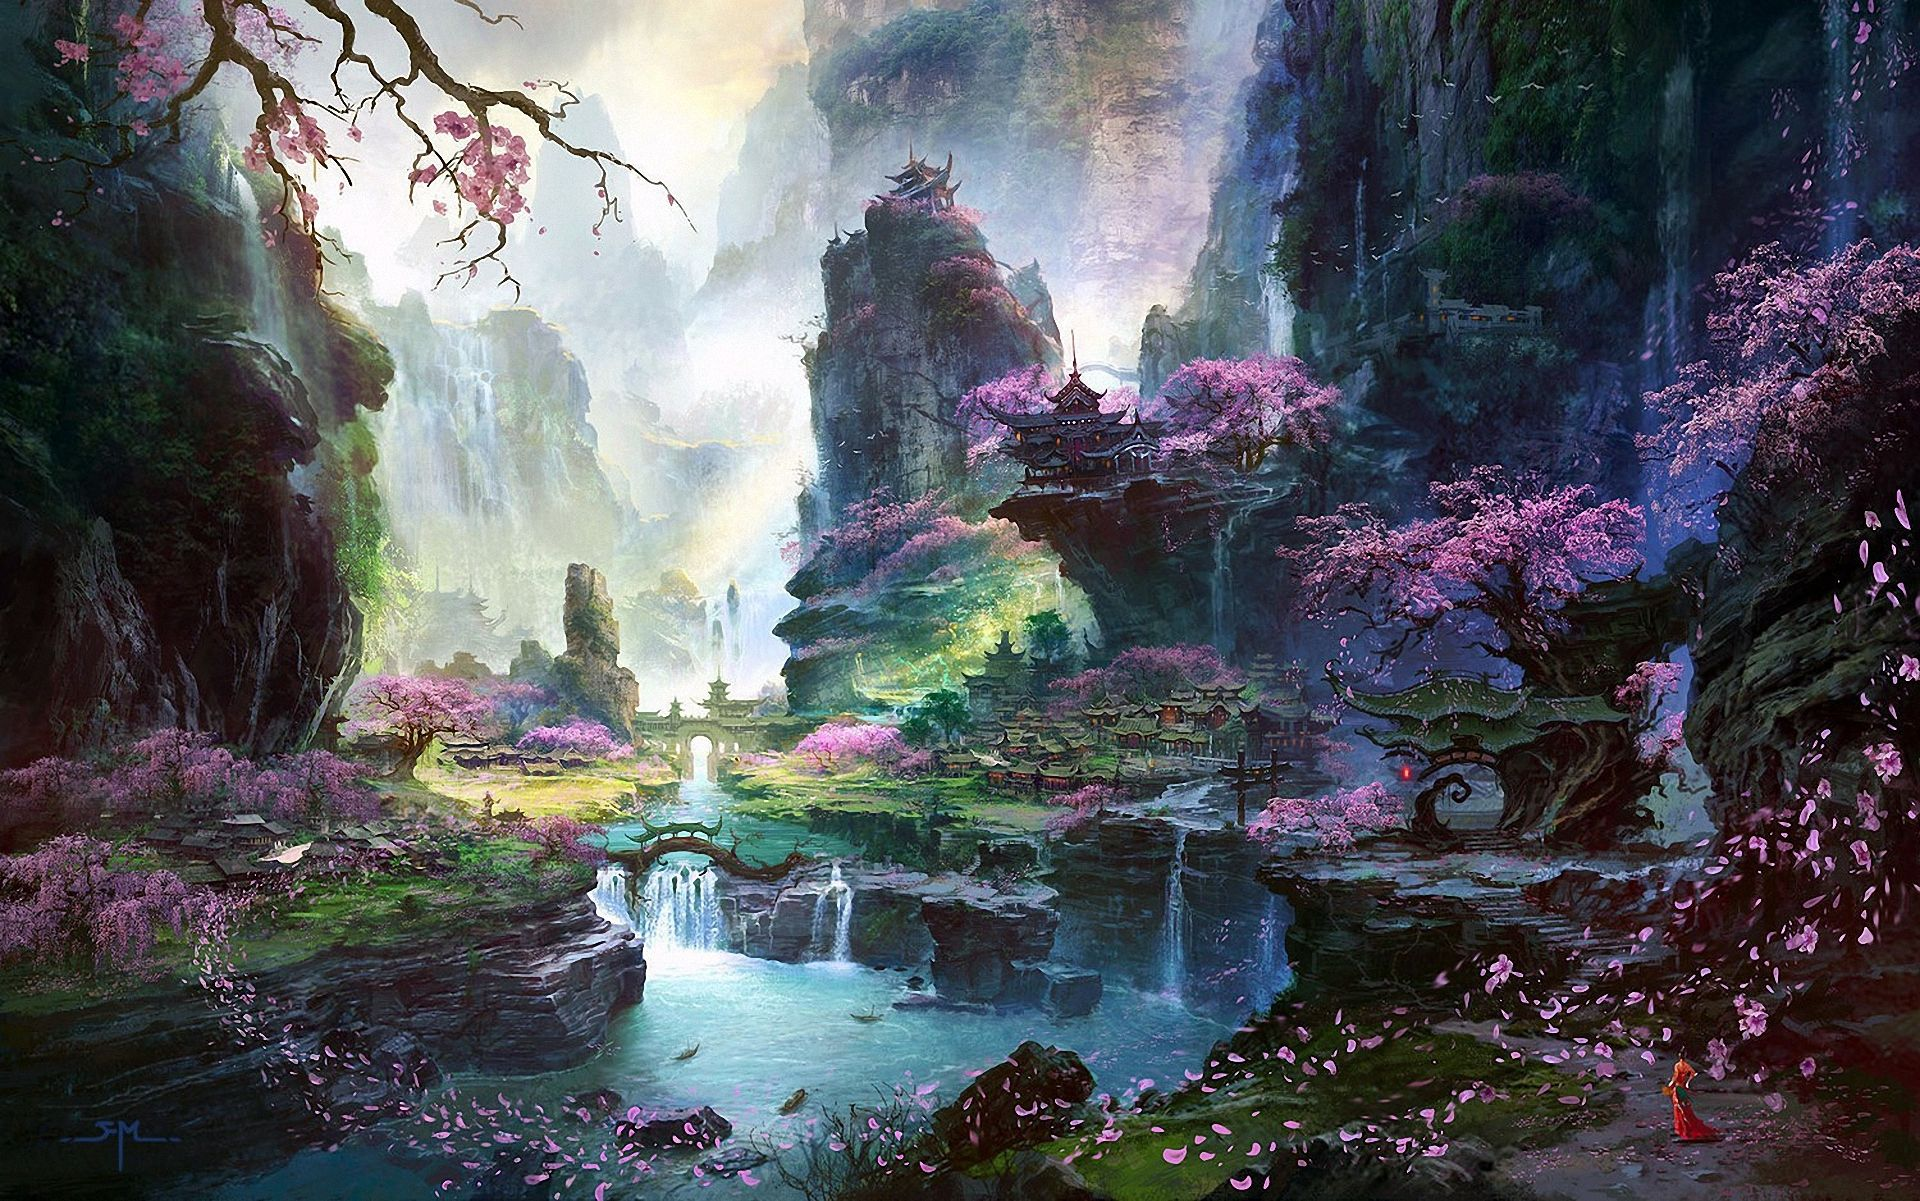 #art, #petals, #landscape, #rocks, #mountains, #river, #a waterfall, #a girl, #asia, #temple, #cherry trees